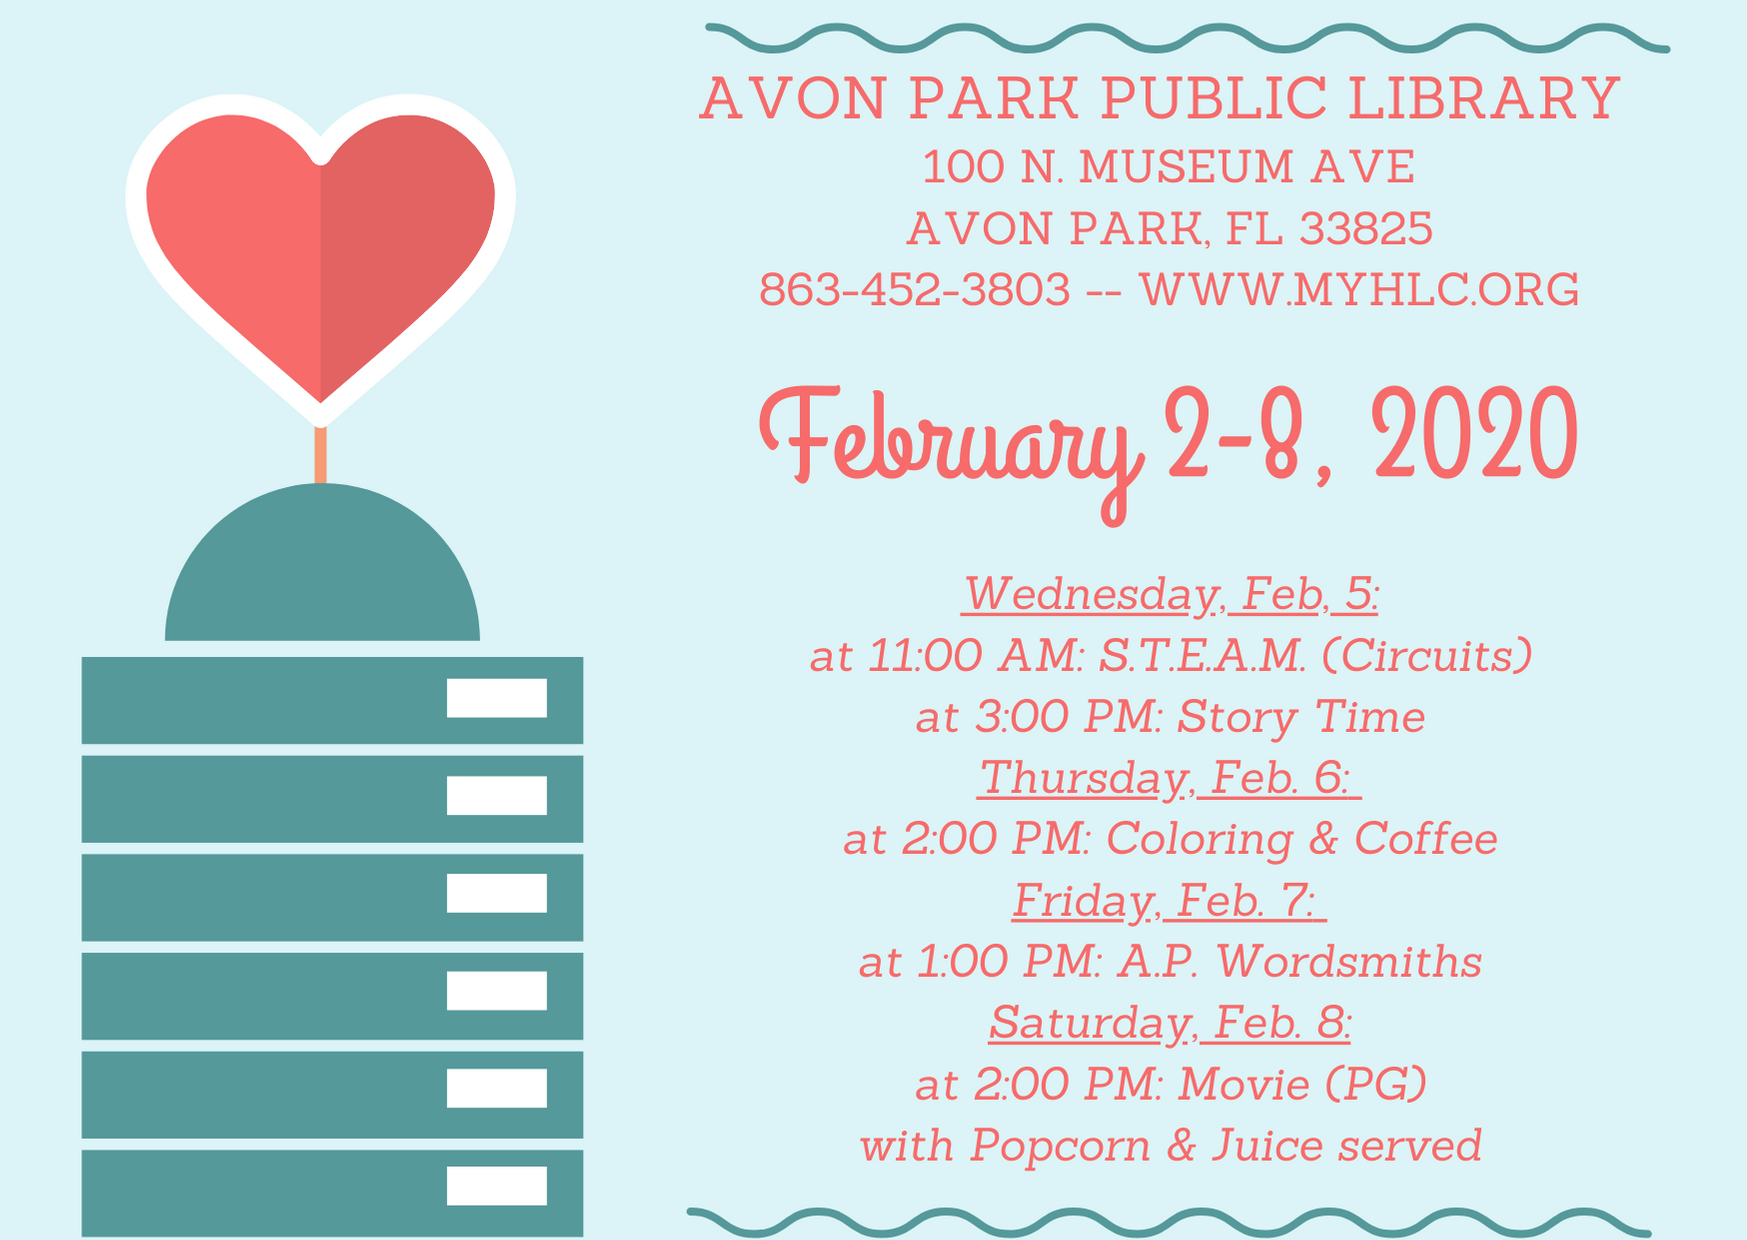 The events for the Avon Park Public Library are as follows: On Wednesday, February 5, 2020 at 11:00 AM, Ms. Megan will be hosting S.T.E.A.M. in the meeting room of the library. Participants will get a chance to learn about and experiment with circuits. At 3:00 PM on February 5, Ms. Kim will host story time in the children's area. On Thursday, February 6, 2020, we will have coloring and coffee for adults happening in the meeting room 2:00 PM to 4:00 PM. On Friday, January 7, 2020 at 1:00 PM, the A.P Wordsmiths will be meeting.